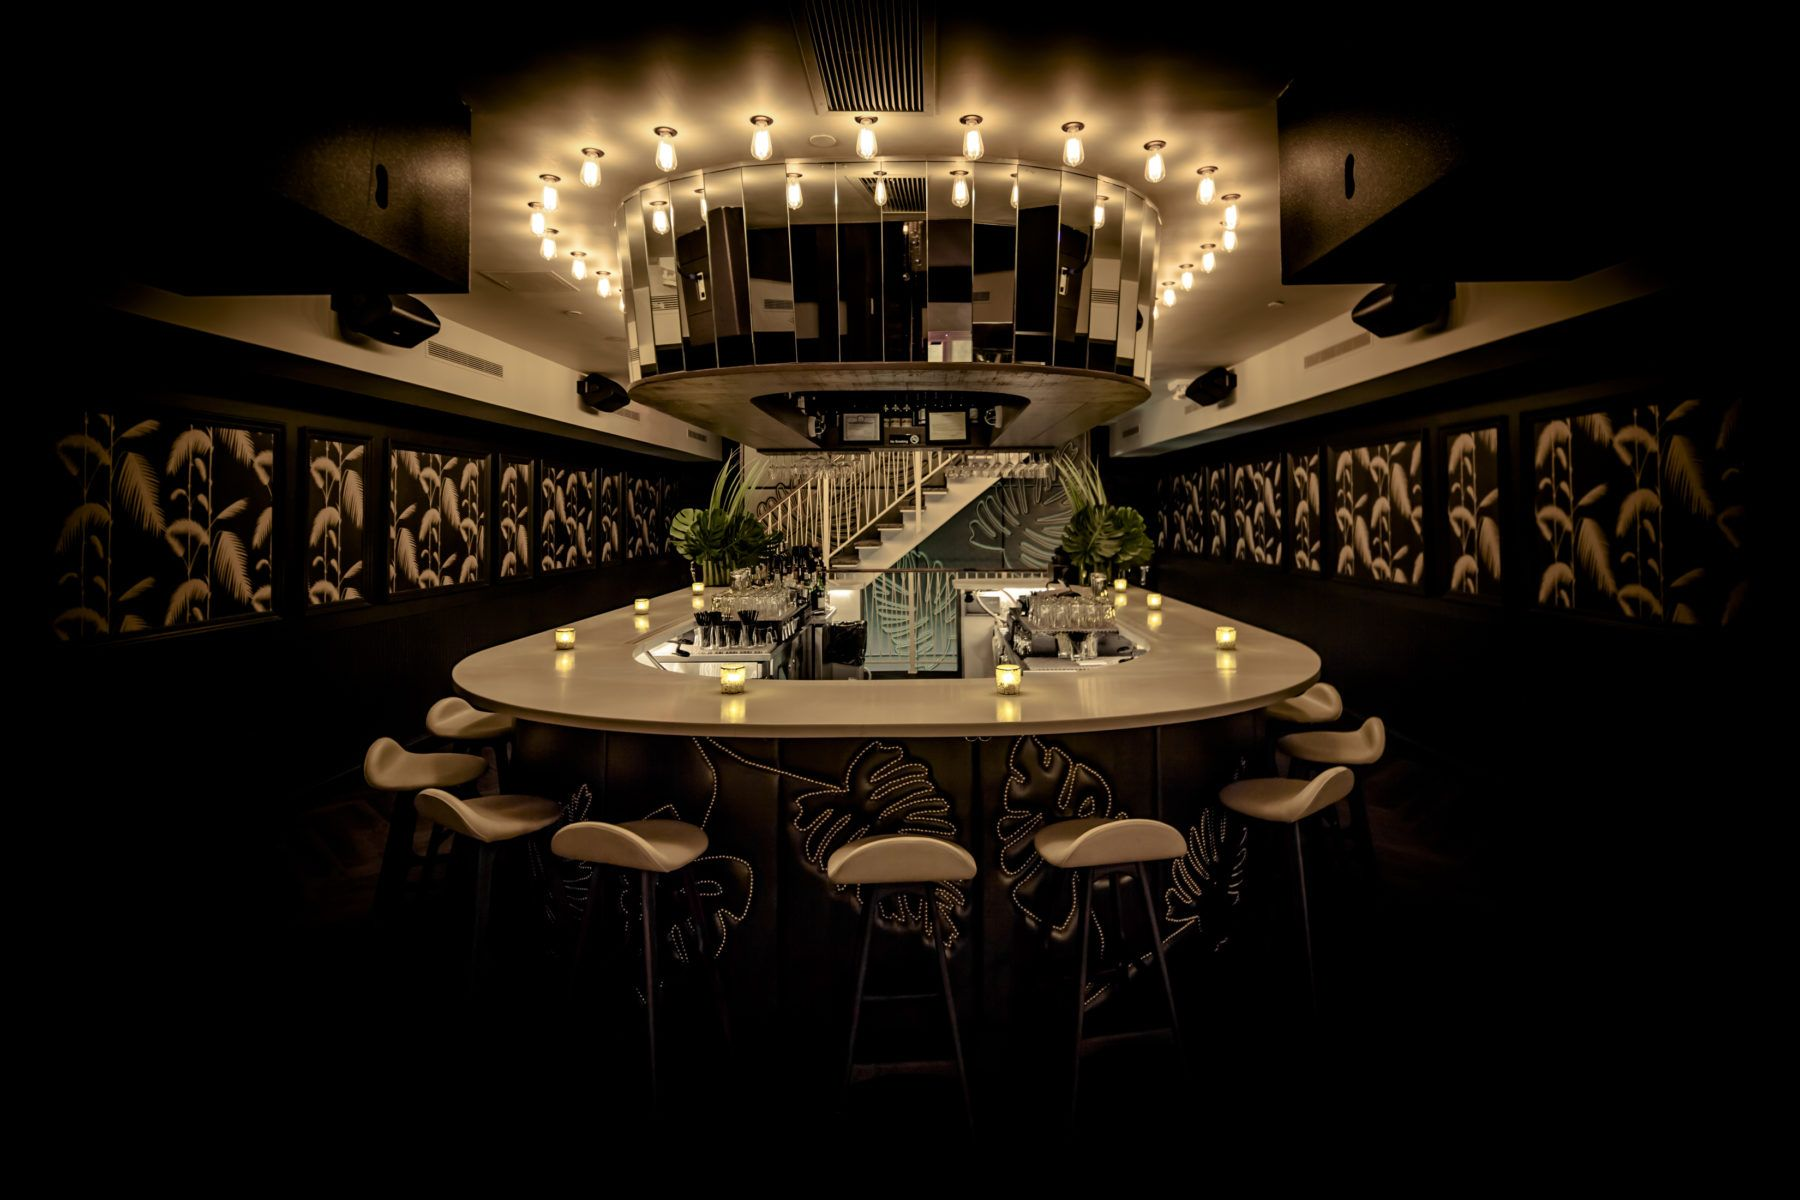 The Bar at Number 8 nightclub